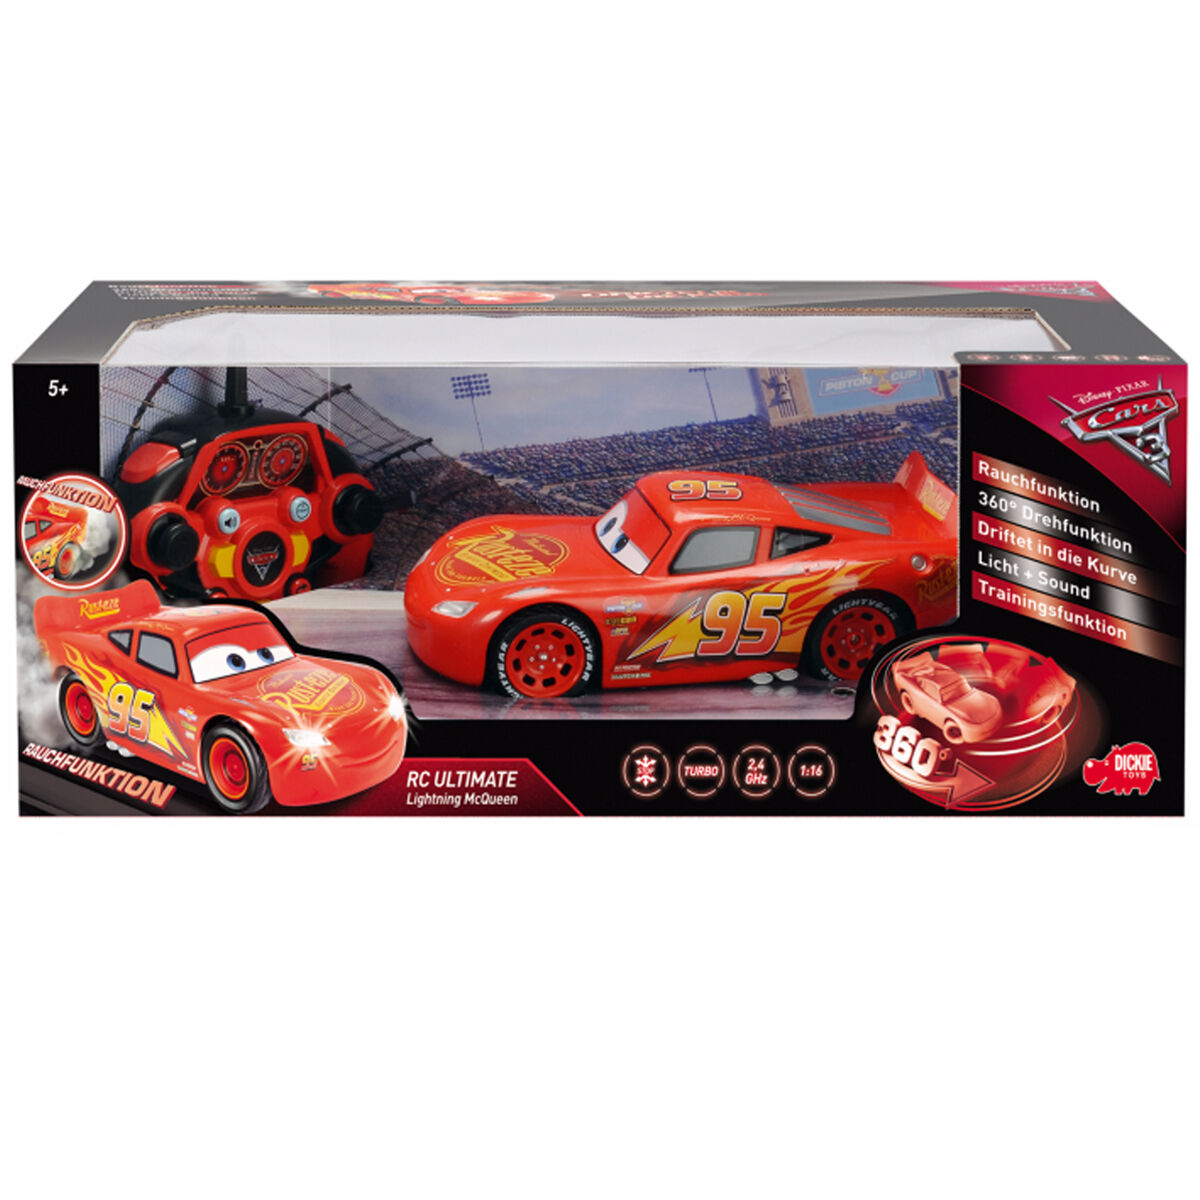 Dickie Toys Cars 3 Rc Ultimate Lightning Mcqueen Karstadt Online Shop